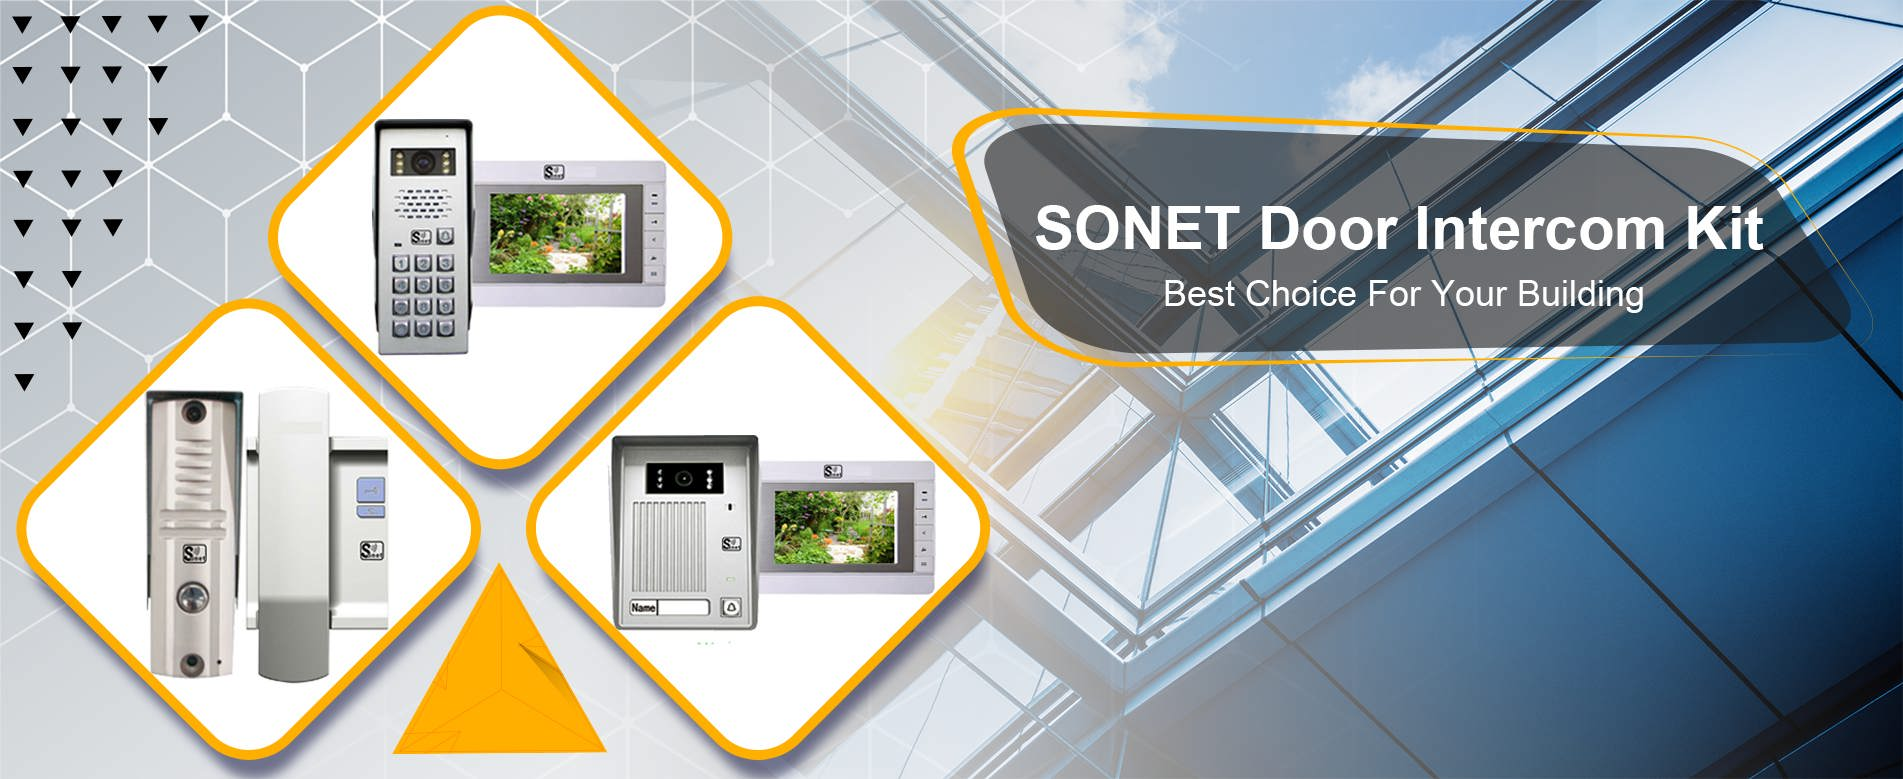 sonet door door intercom kit